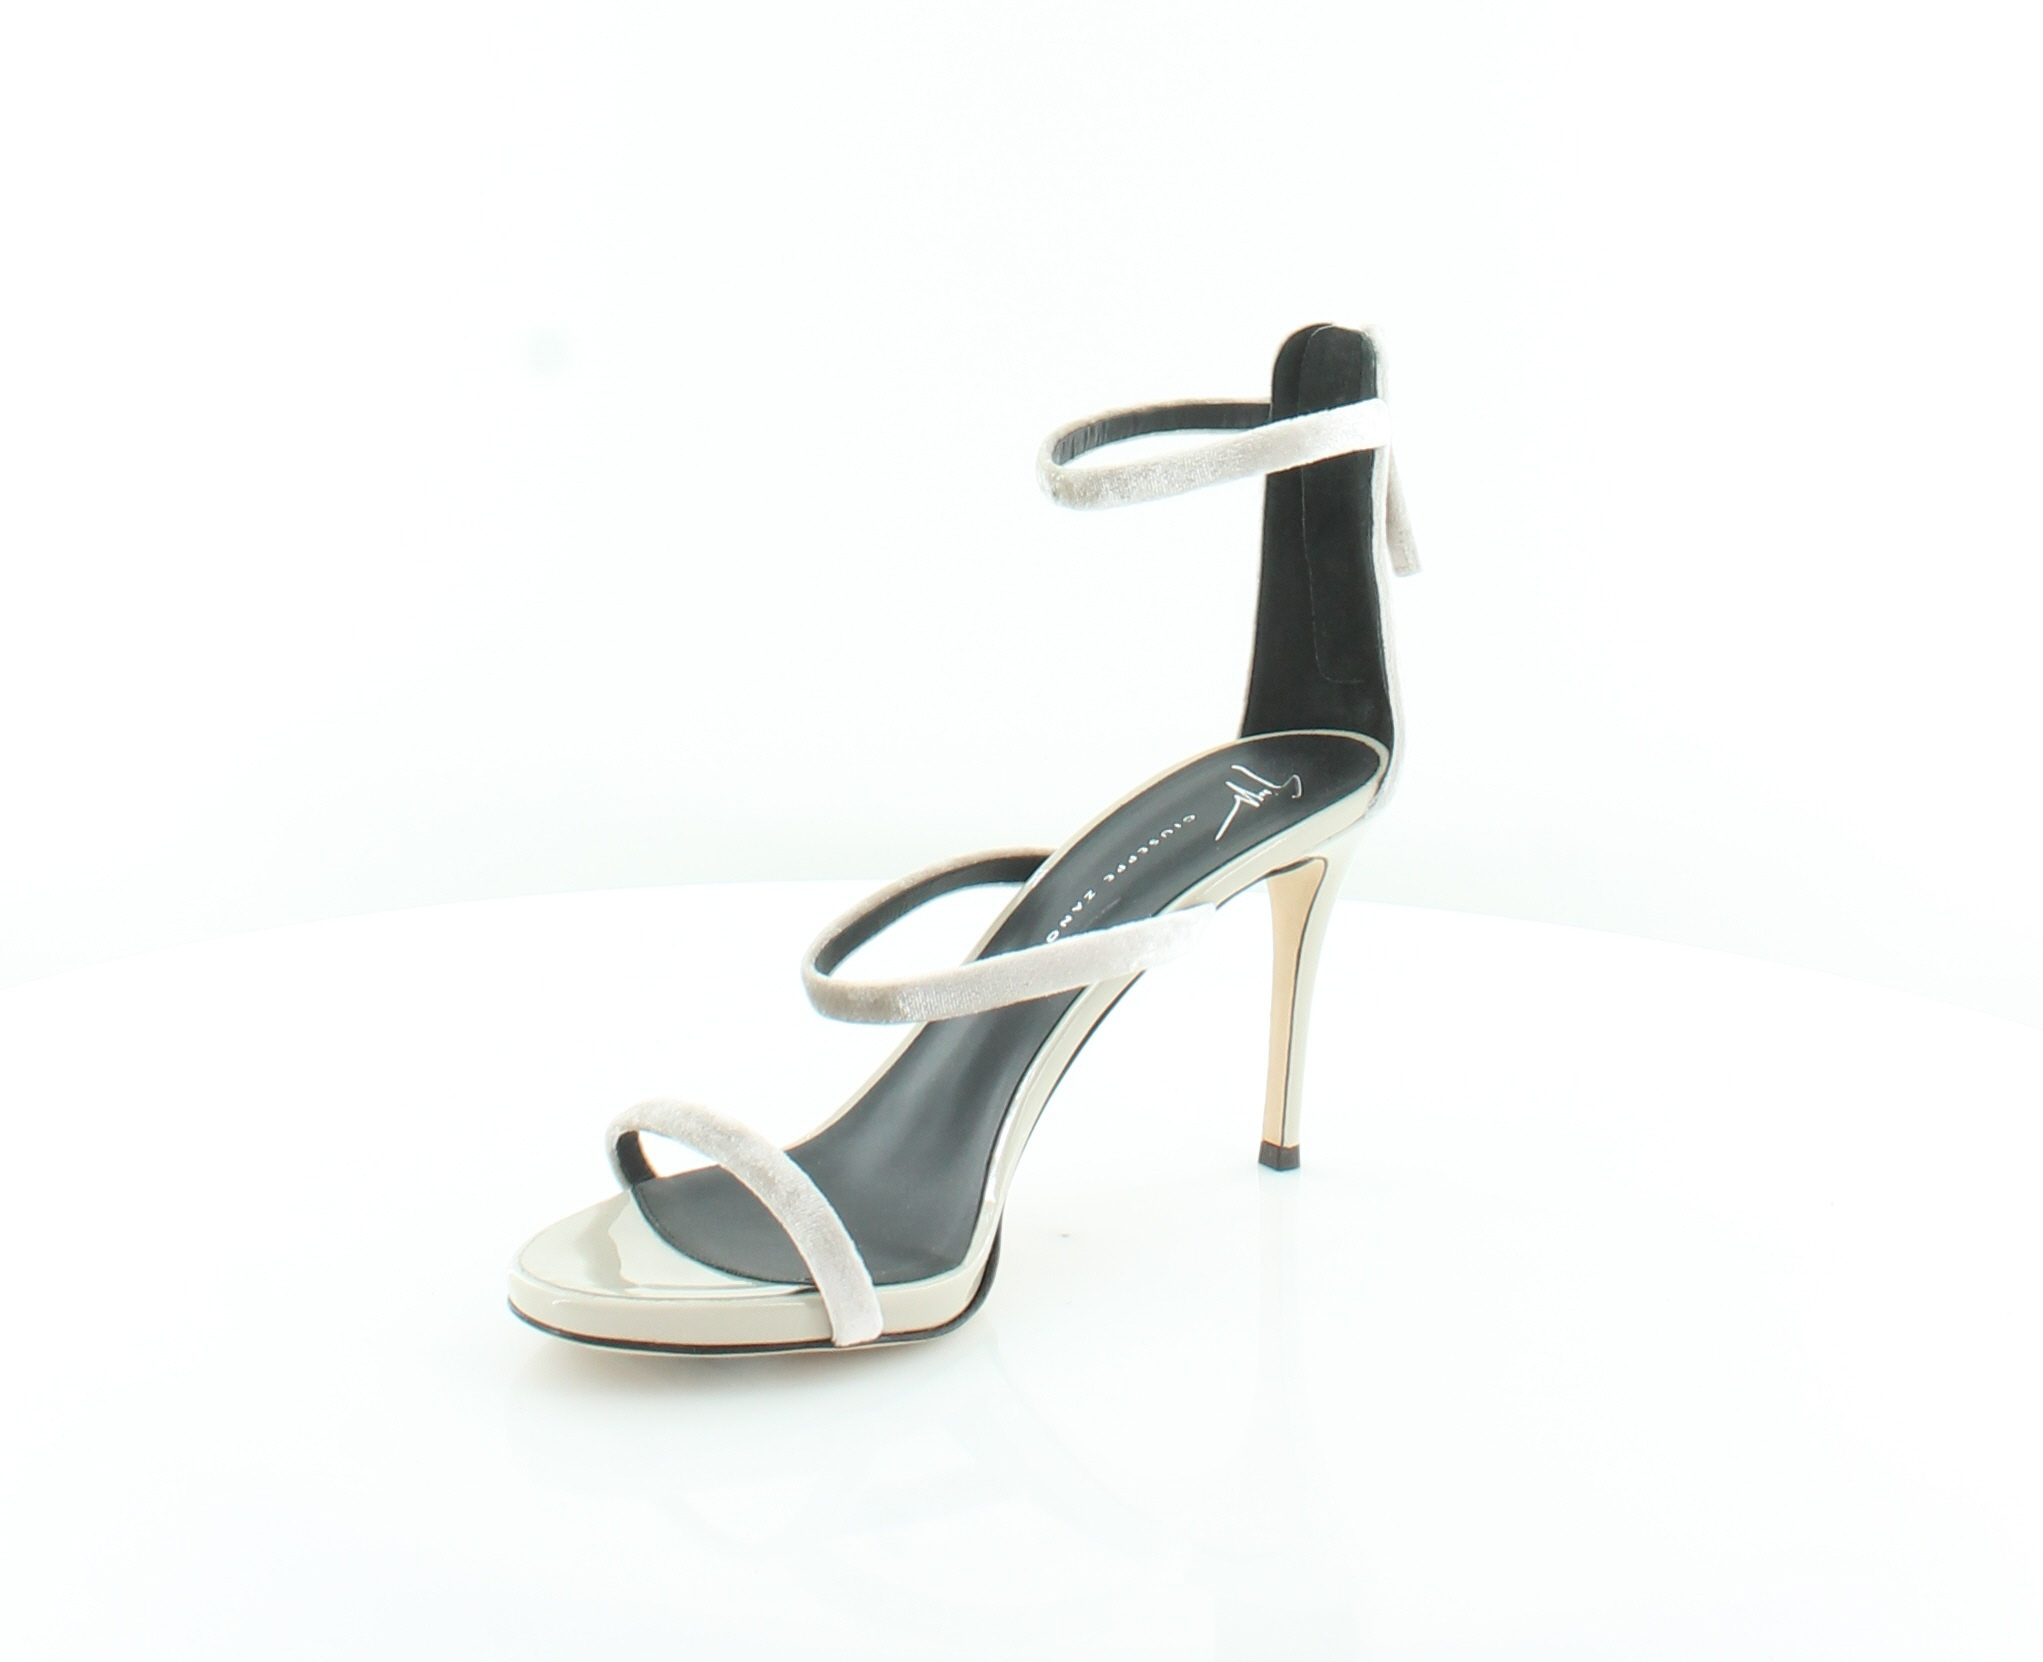 1d7b63fb2433f ... Picture 2 of 5; Picture 3 of 5; Picture 4 of 5. 2. Giuseppe Zanotti  Alien 3 Strap Beige Womens Shoes ...